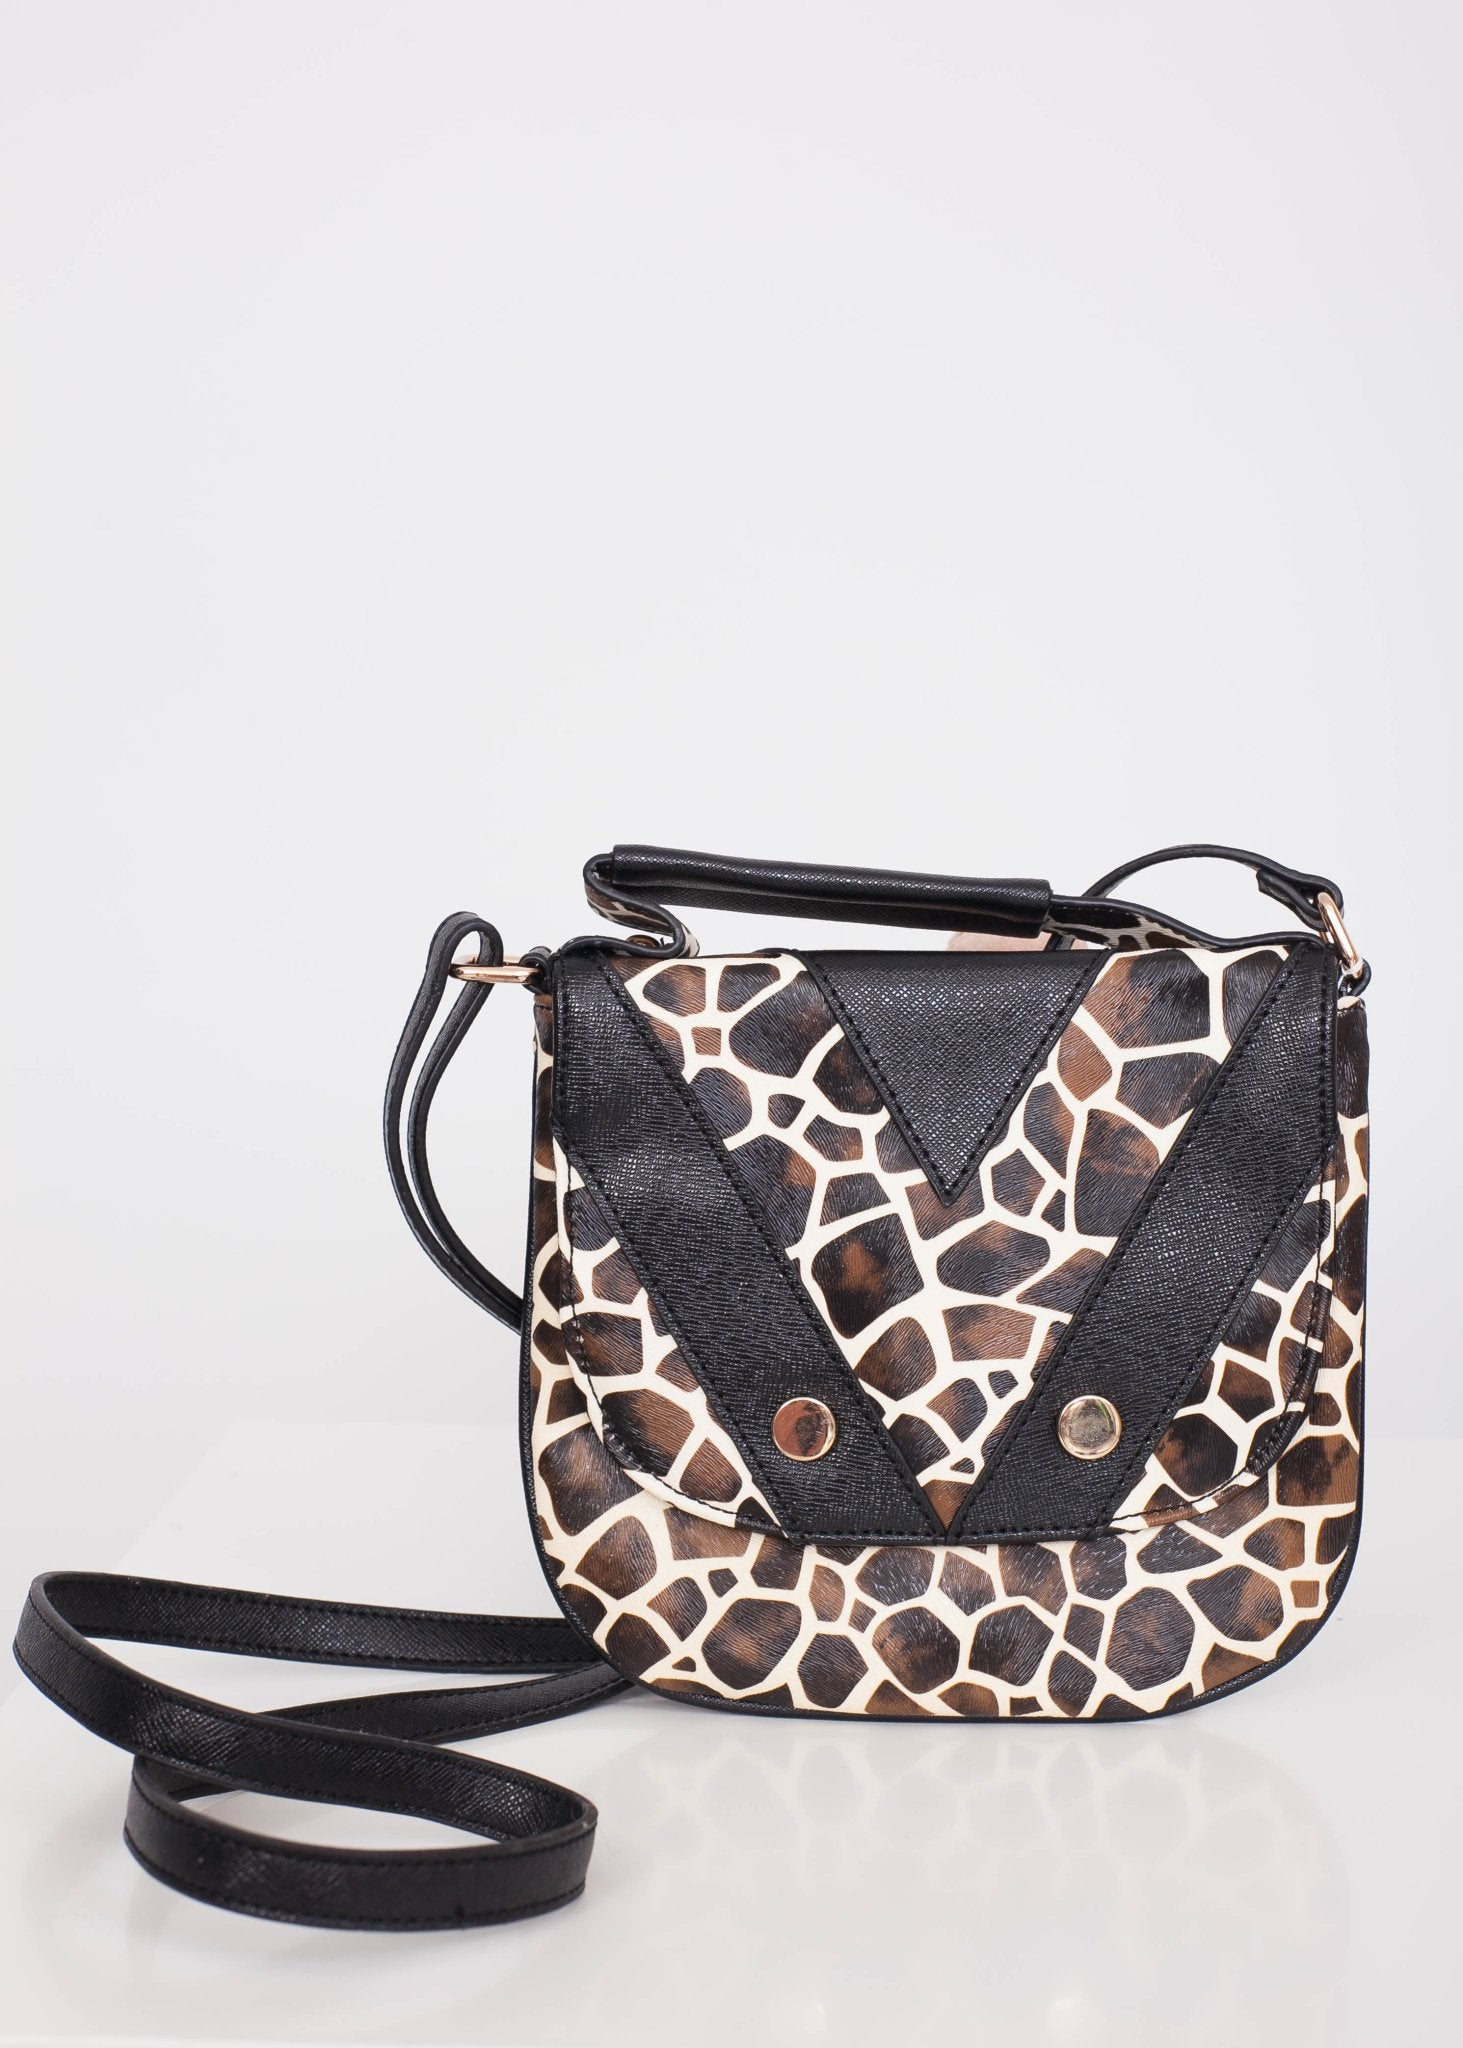 Emilia Giraffe Crossbody Bag - The Walk in Wardrobe